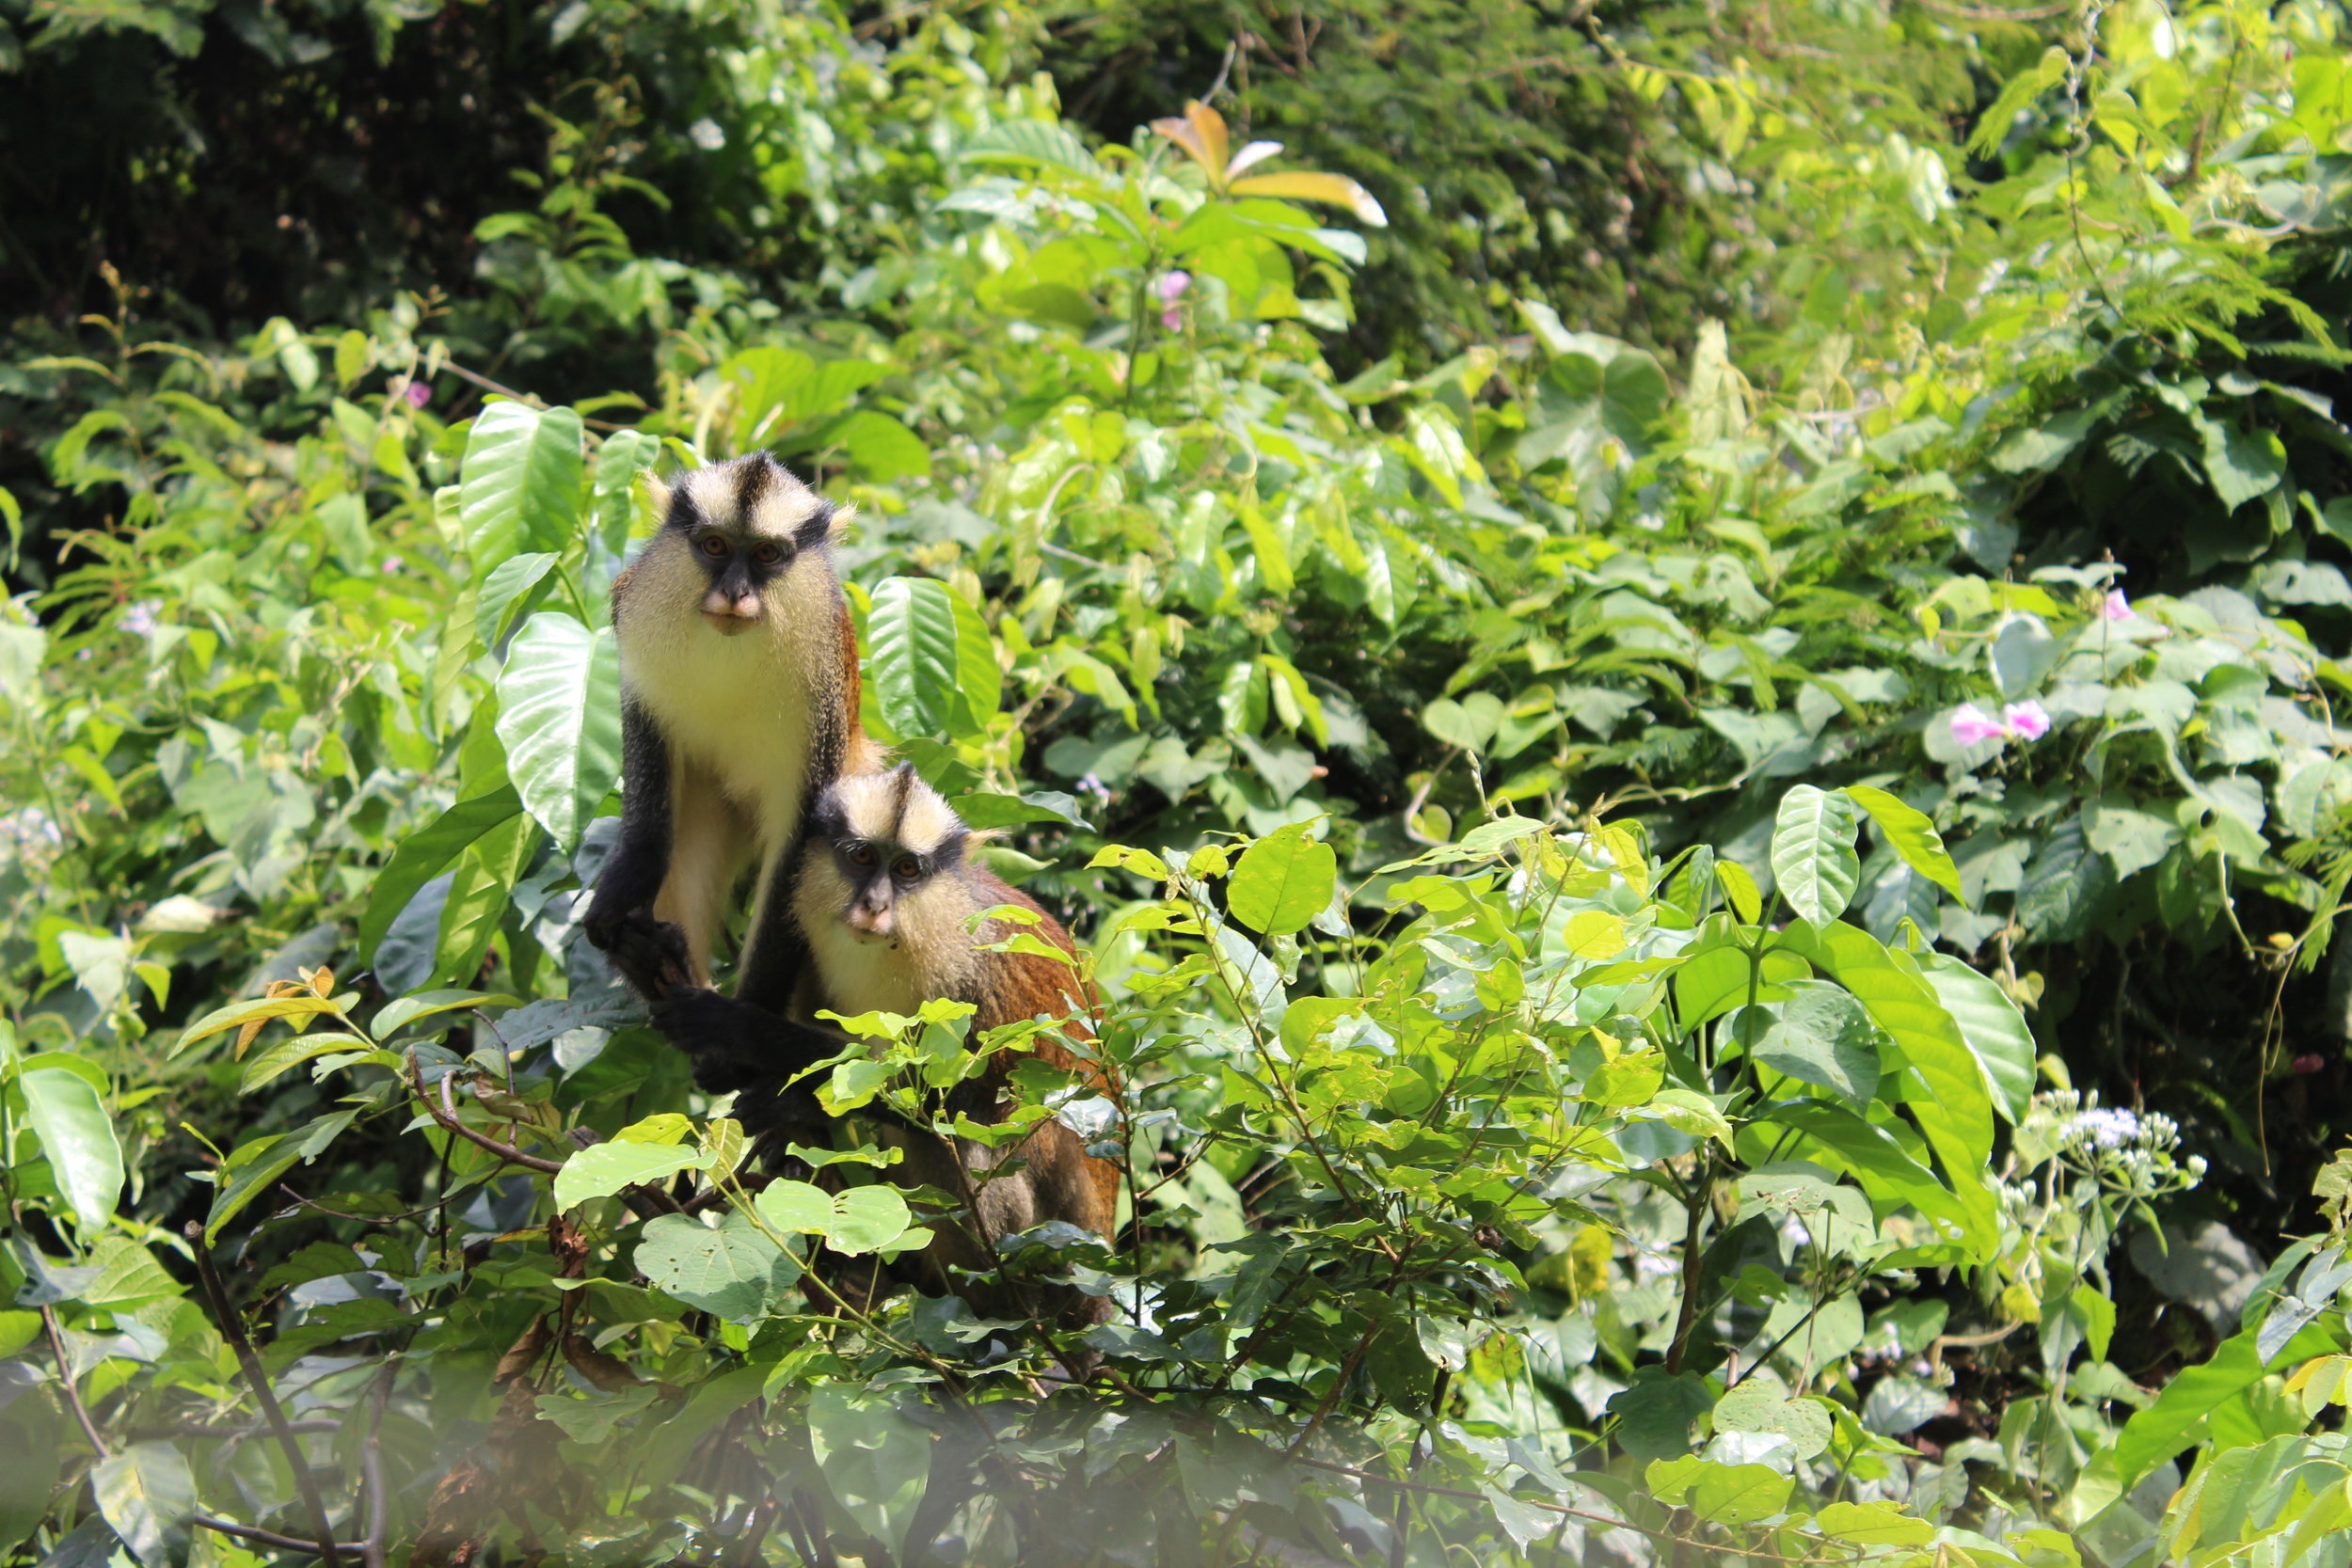 NUNU & SHERLOCK, CROWNED GUENON MONKEYS, HEALTHY AND THRIVING AT APE ACTION AFRICA